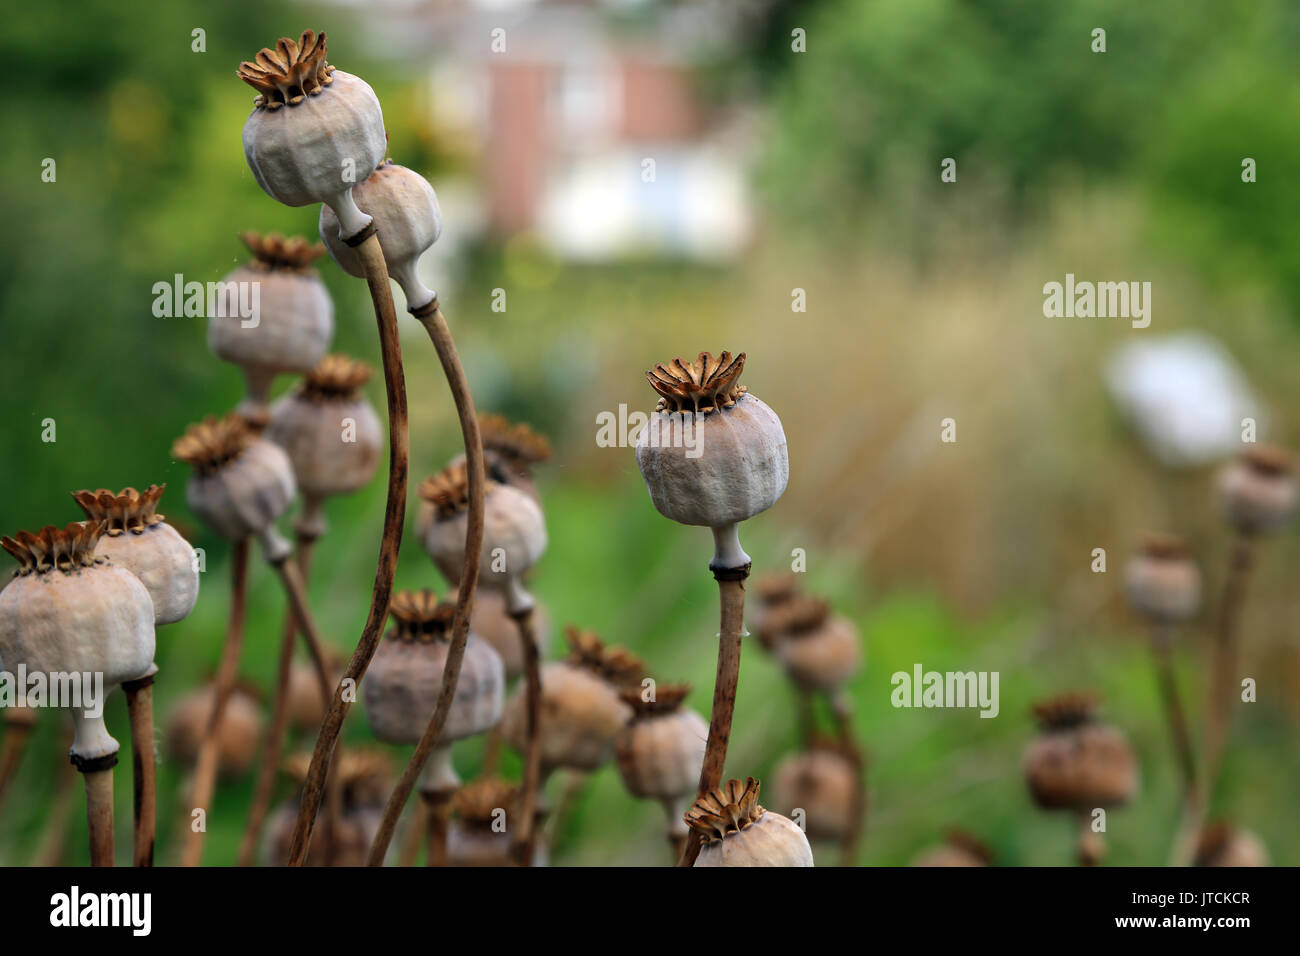 Dried poppy seed pods in Jardin des Plantes, Amiens, Somme, Hauts de France, France - Stock Image